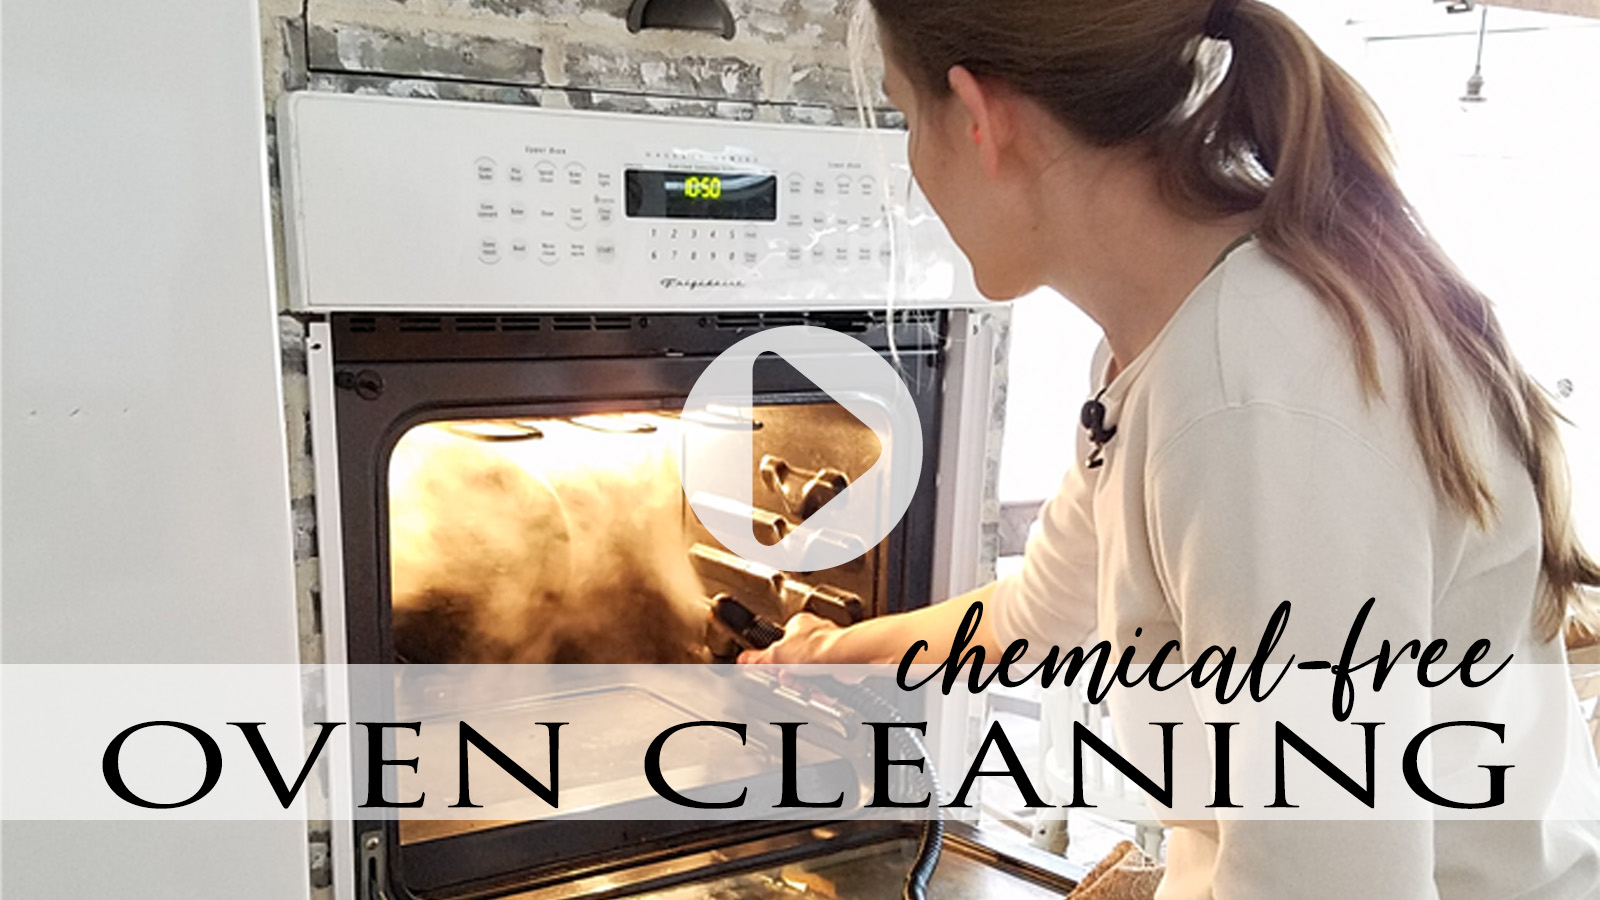 Video Tutorial Chemical-Free Oven Cleaning by Prodigal Pieces | prodigalpieces.com